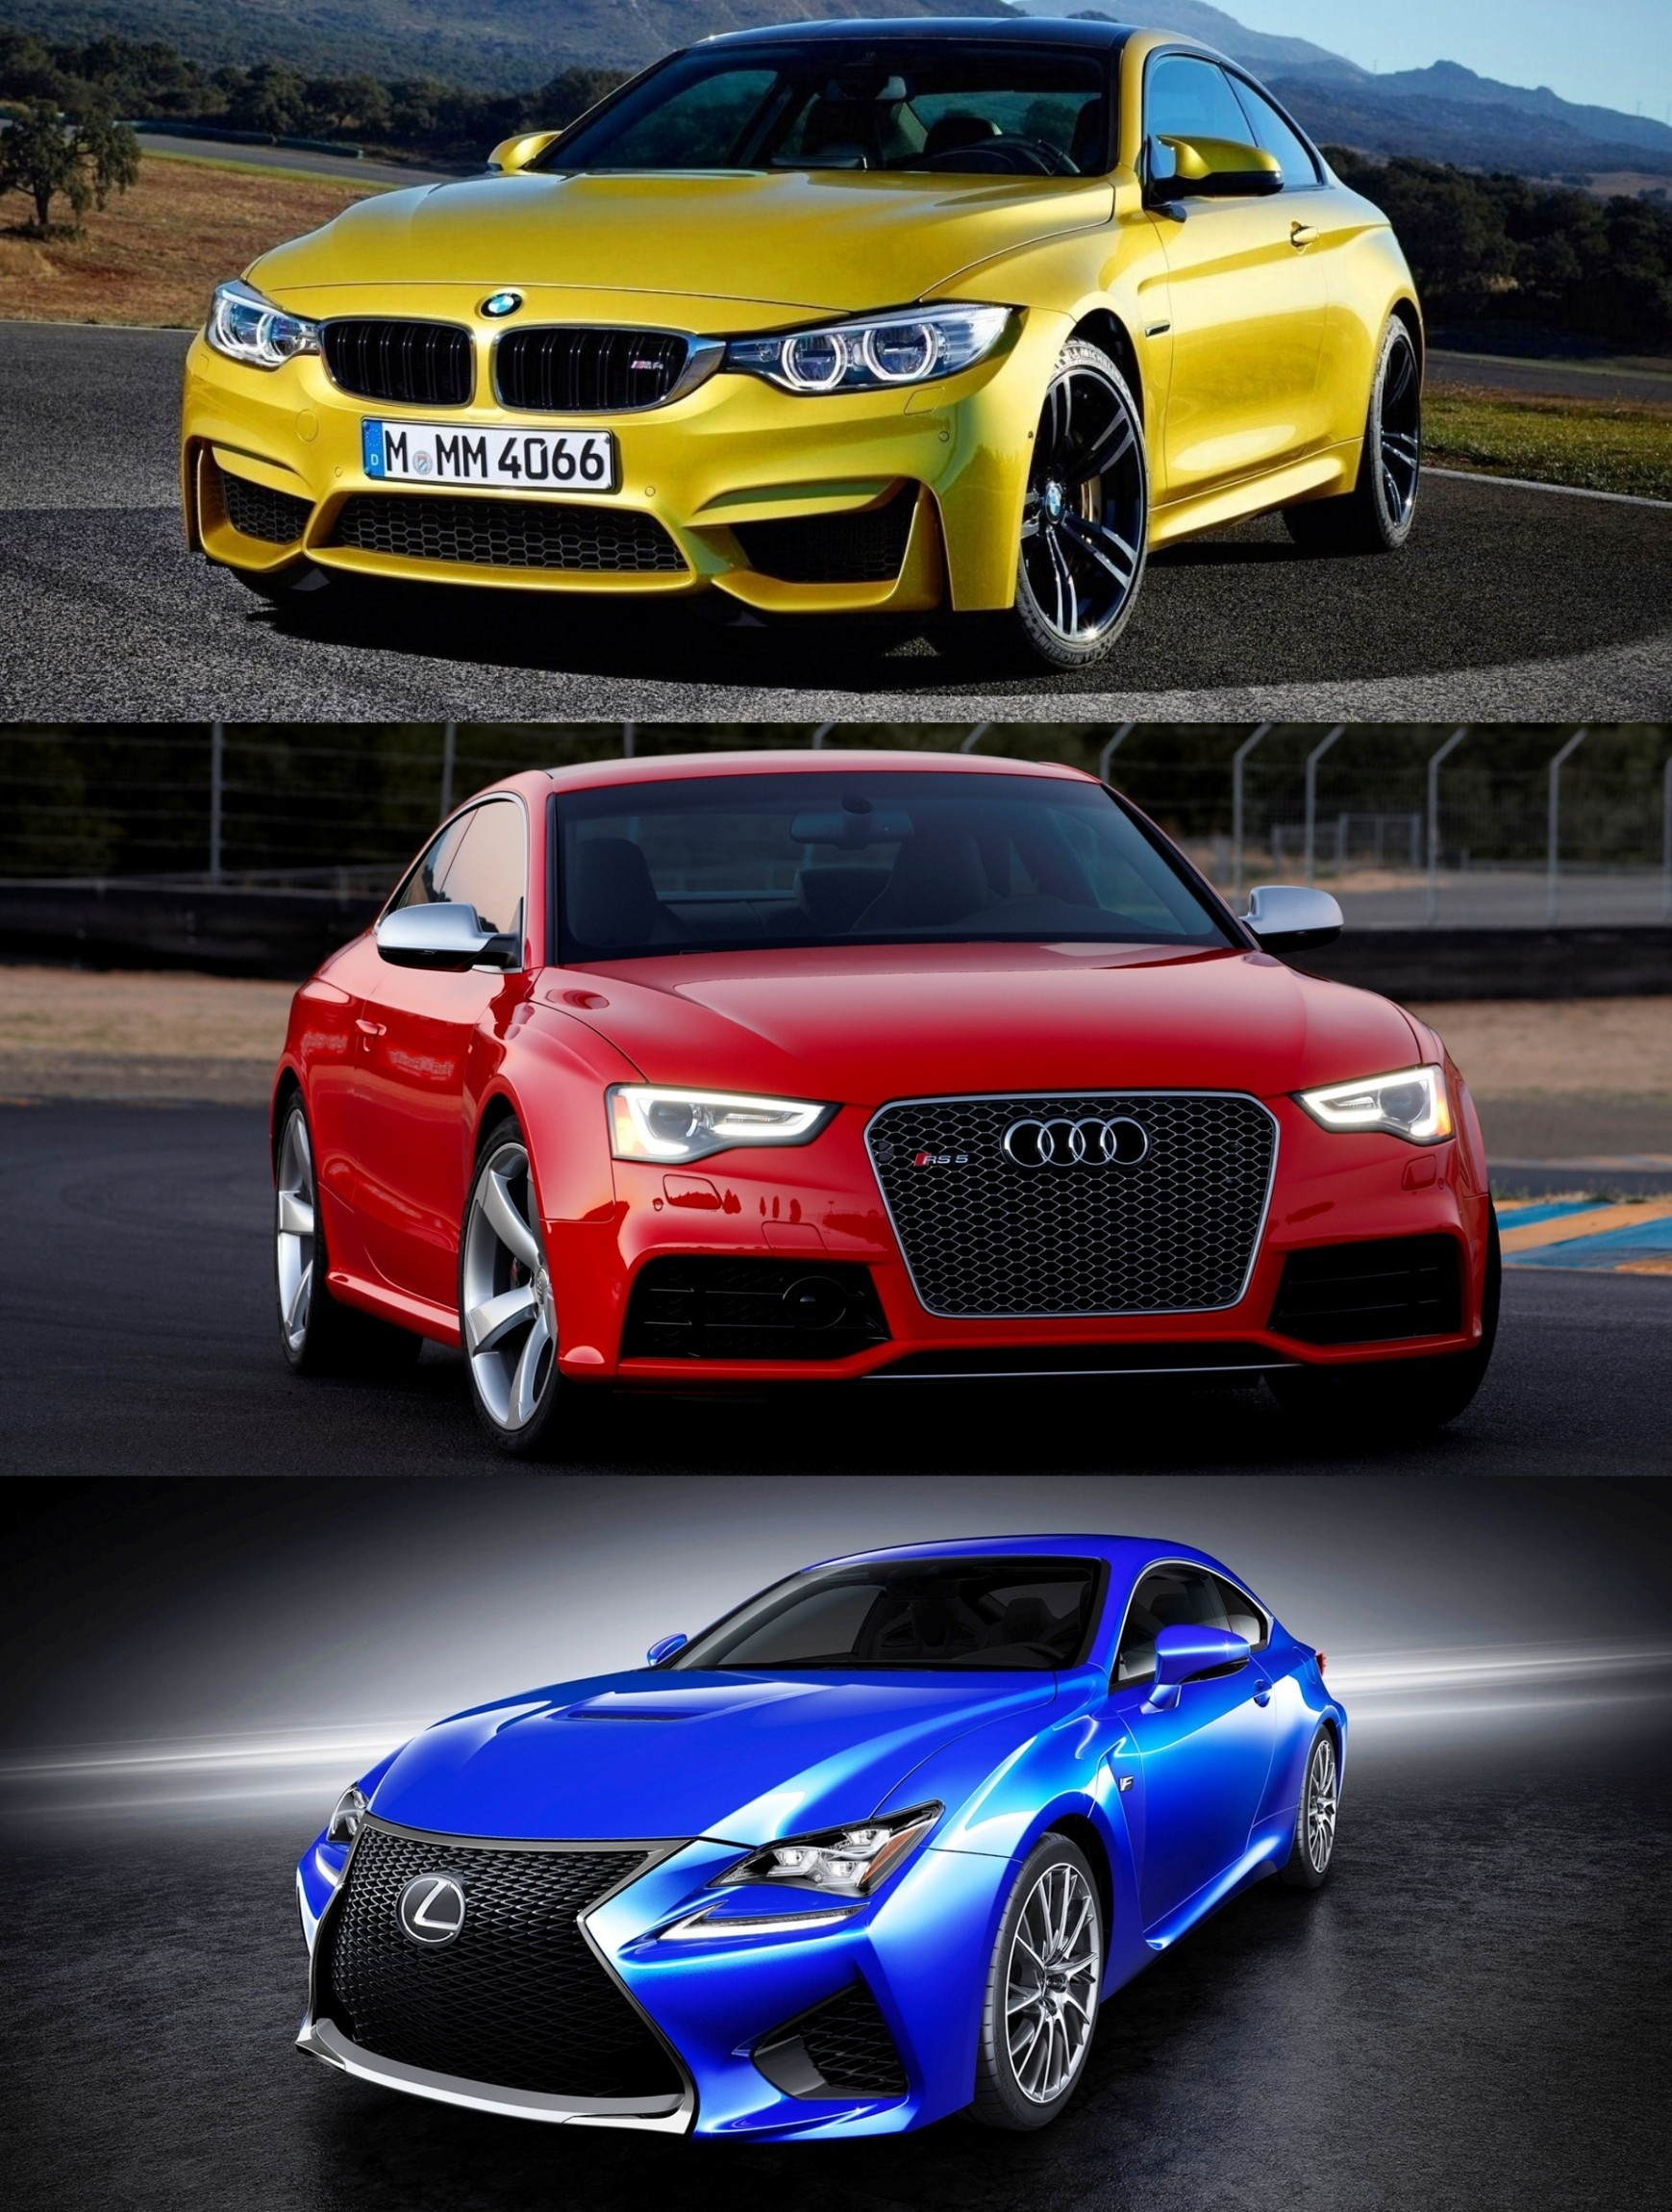 2015 Supercoupe Design Shootout Lexus RC F vs BMW M4 vs Audi RS5 2